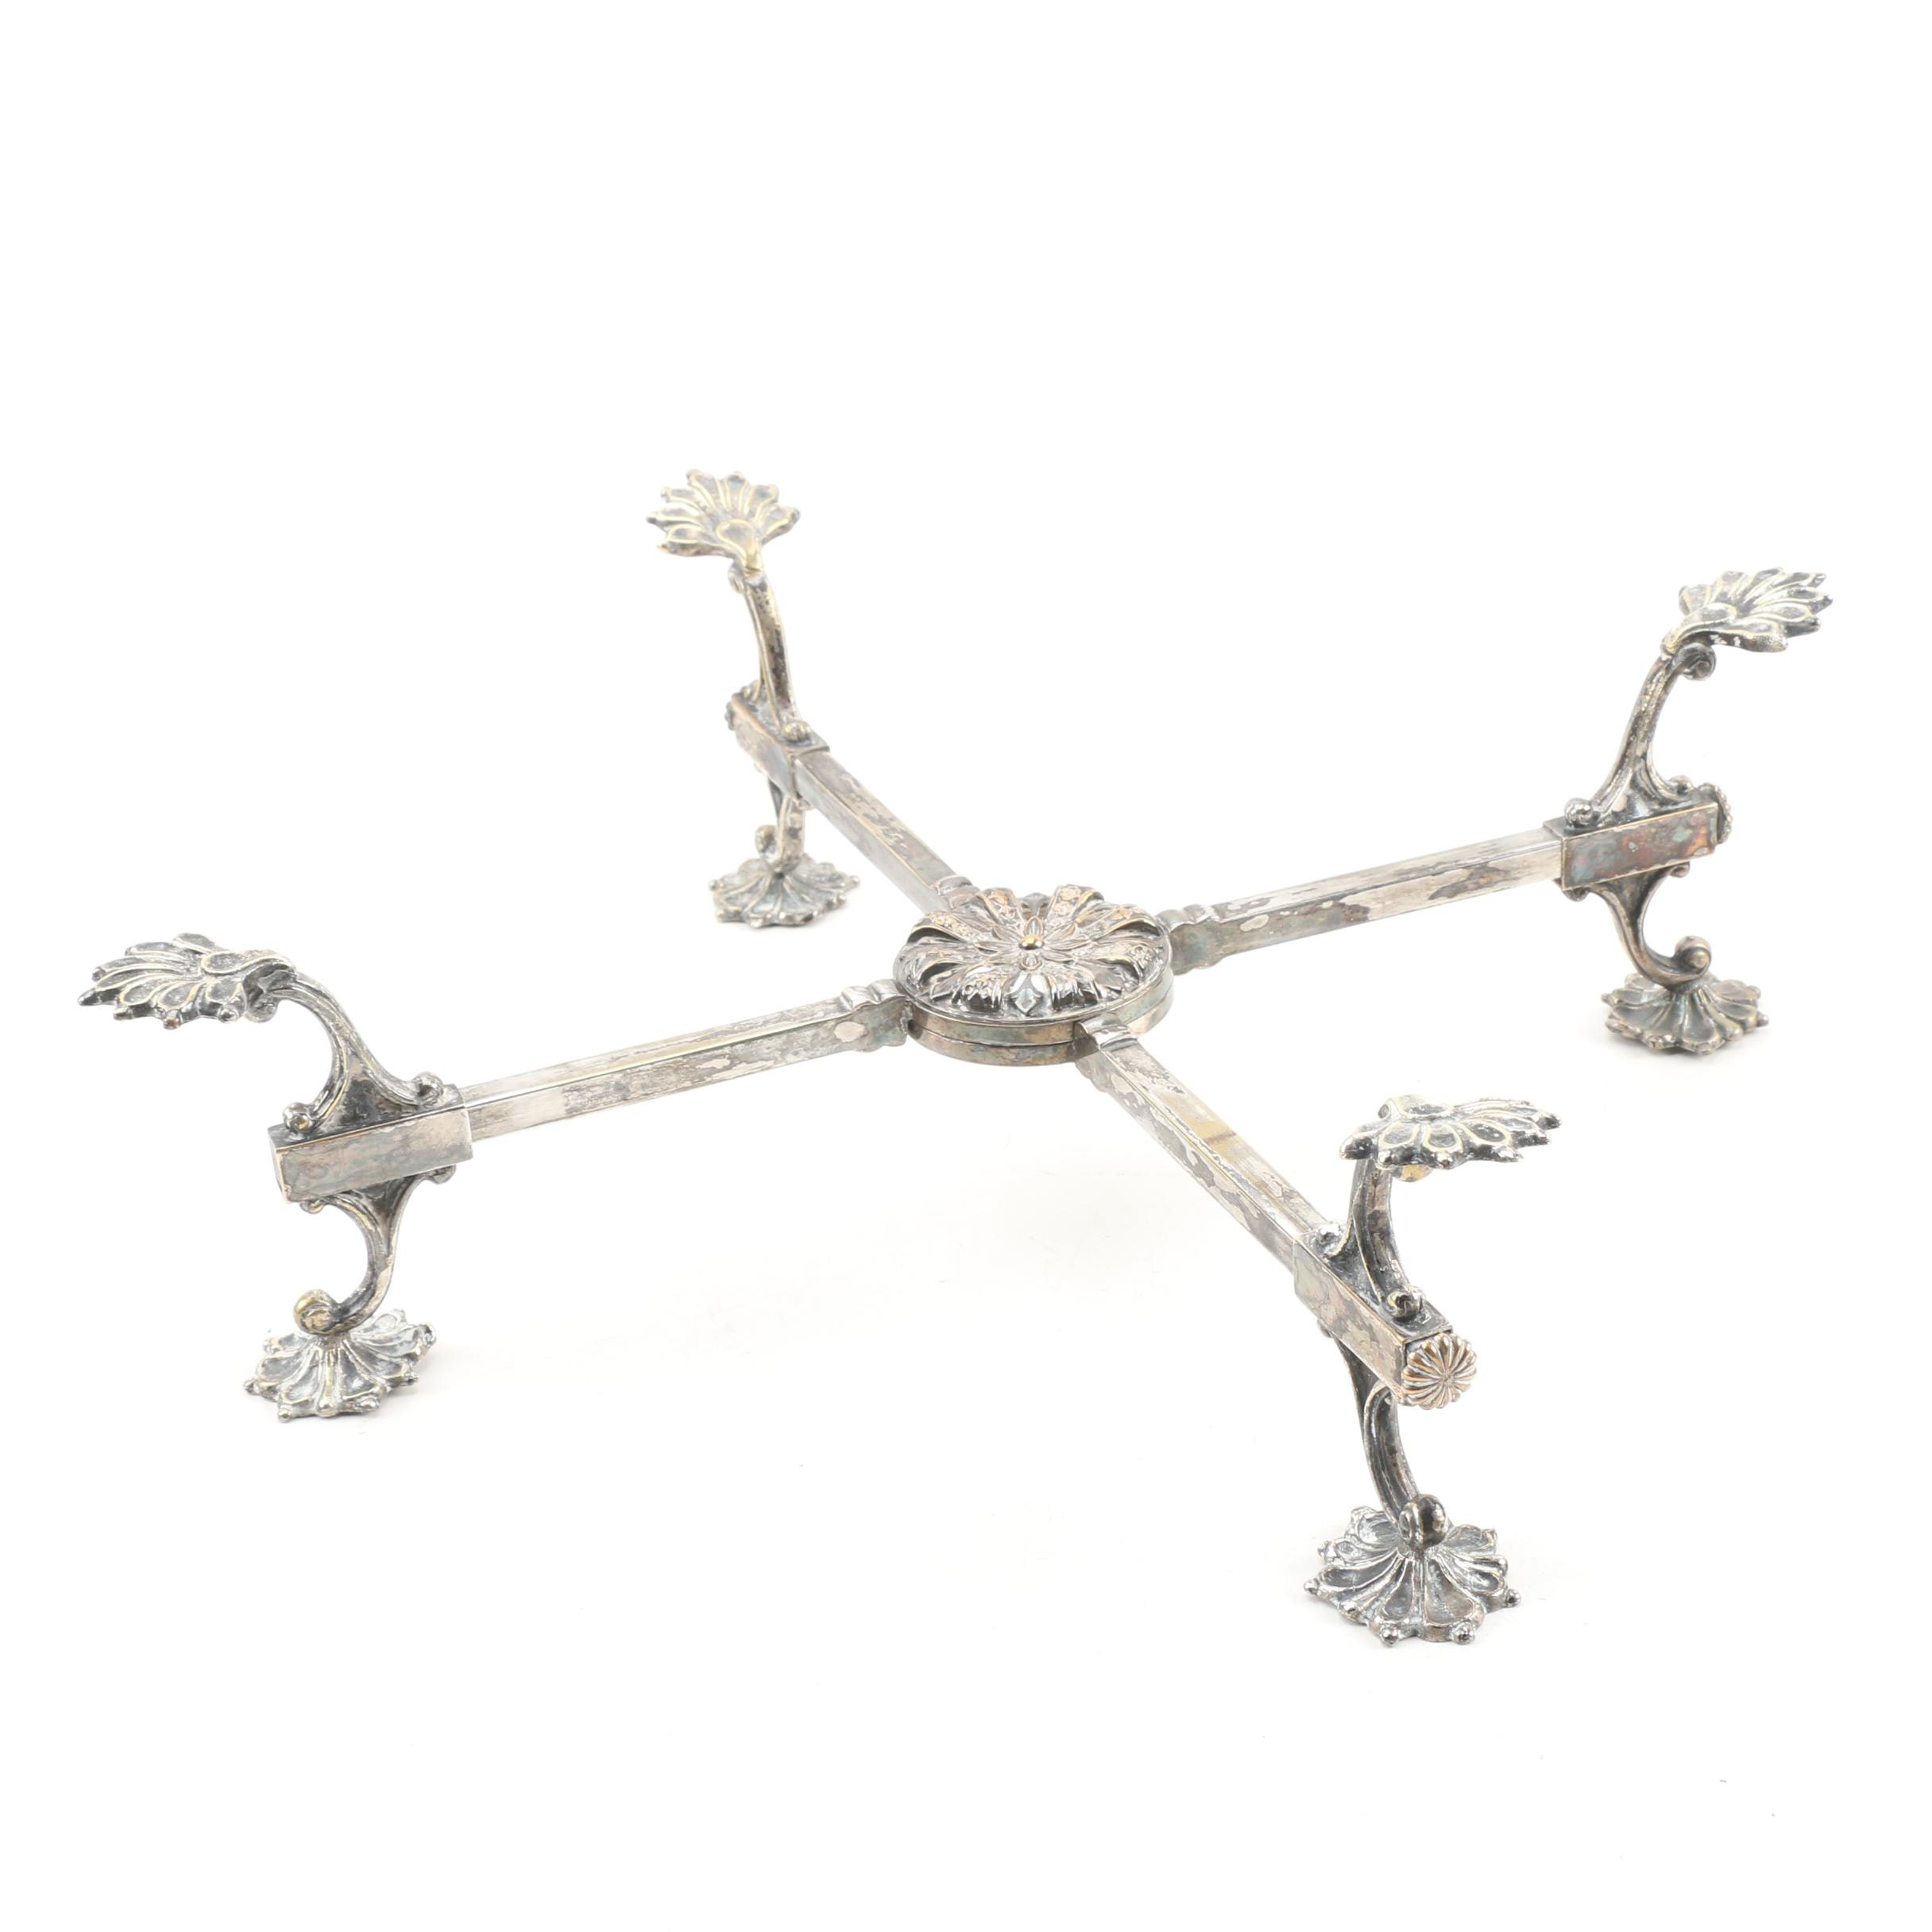 Shell Motif Silver Plate Adjustable Trivet Stand, Late 19th/ Early 20th Century